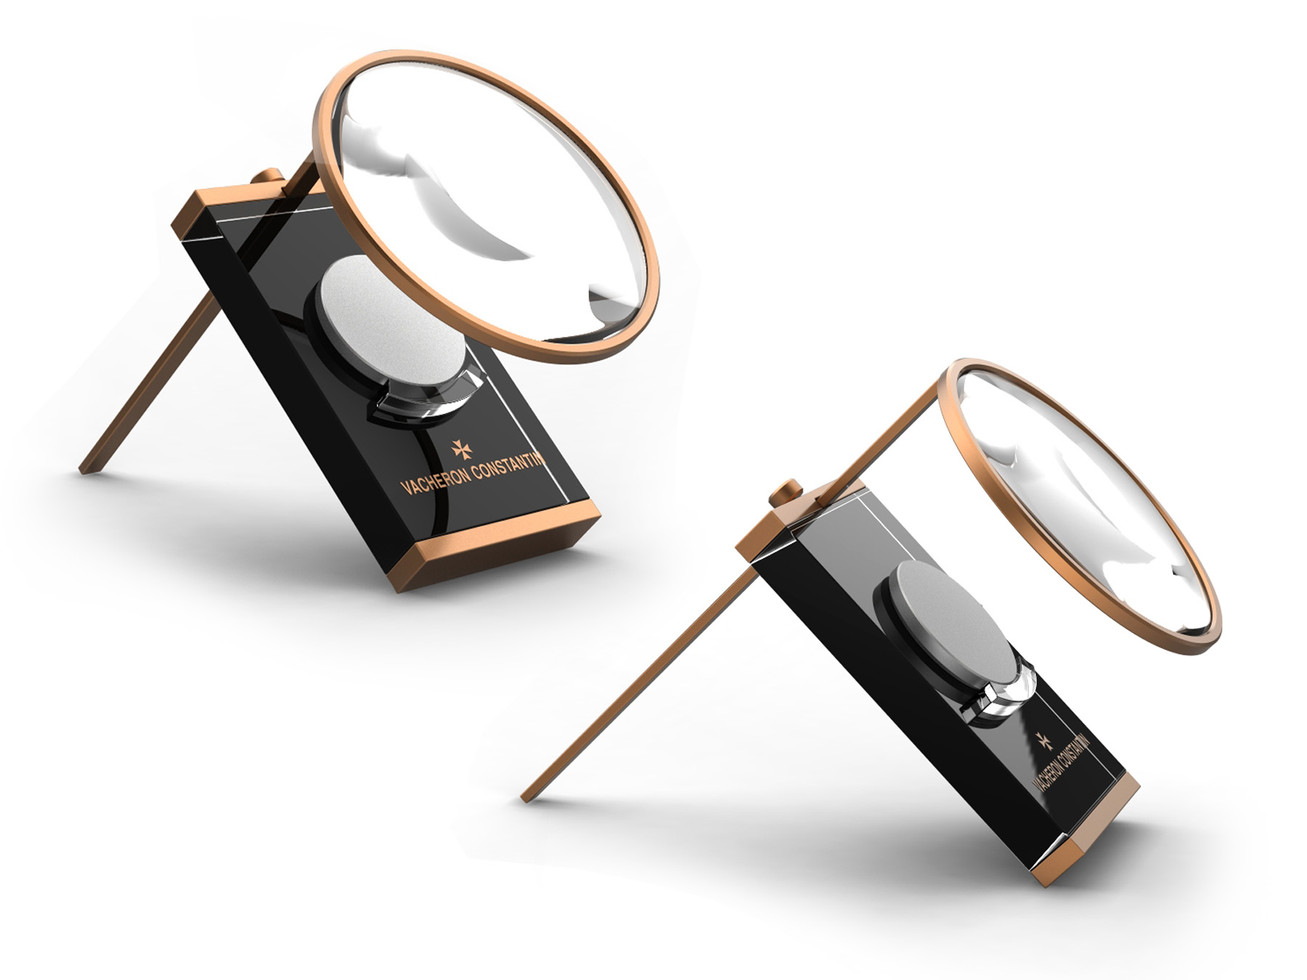 Movement display with magnifying glass